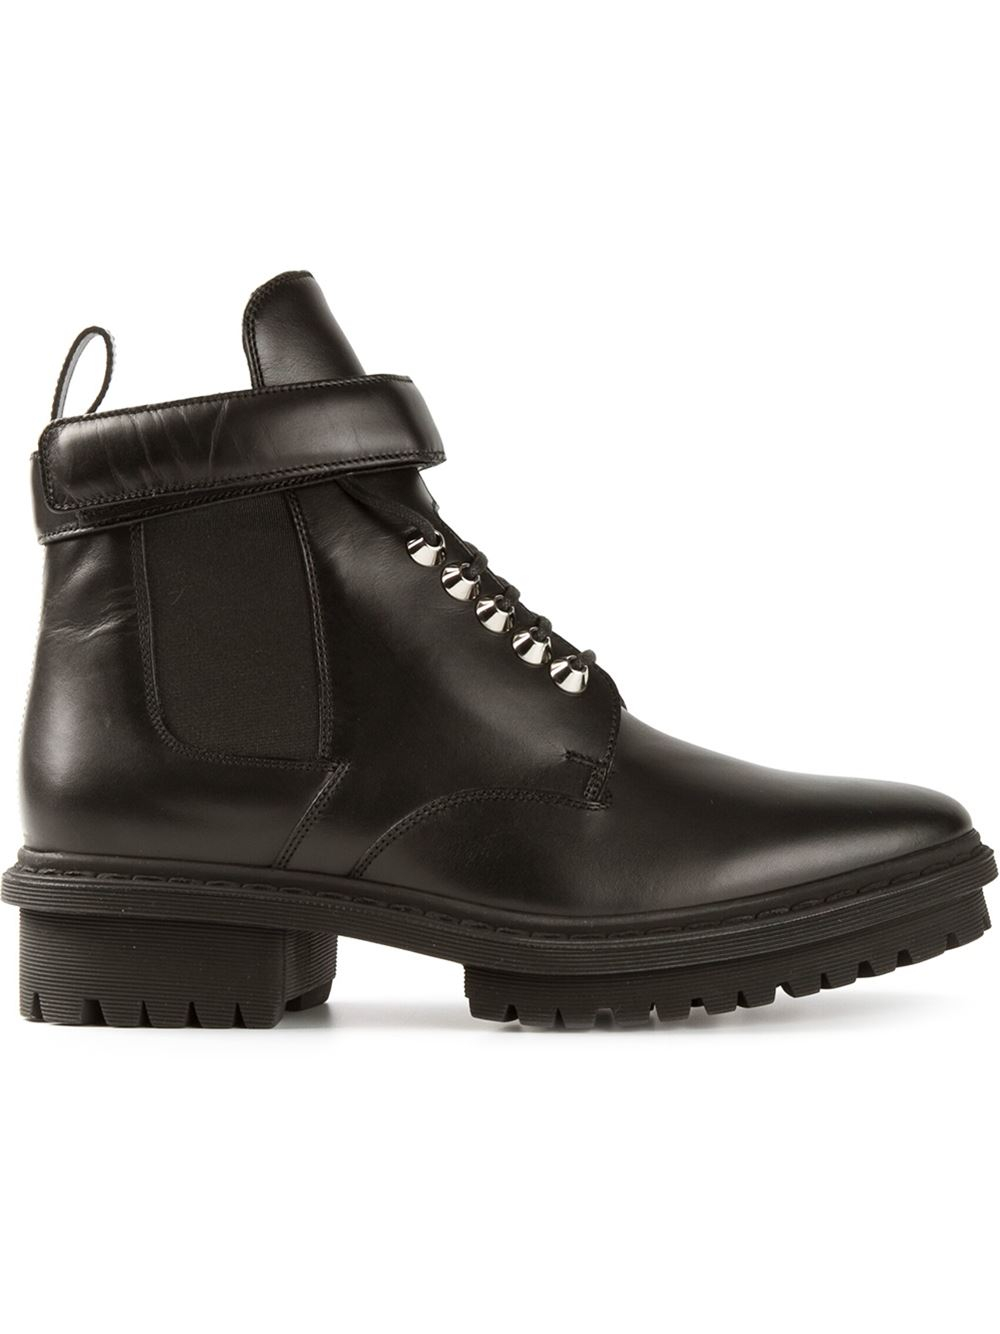 Lyst - Balenciaga Lace Up Boots In Black For Men